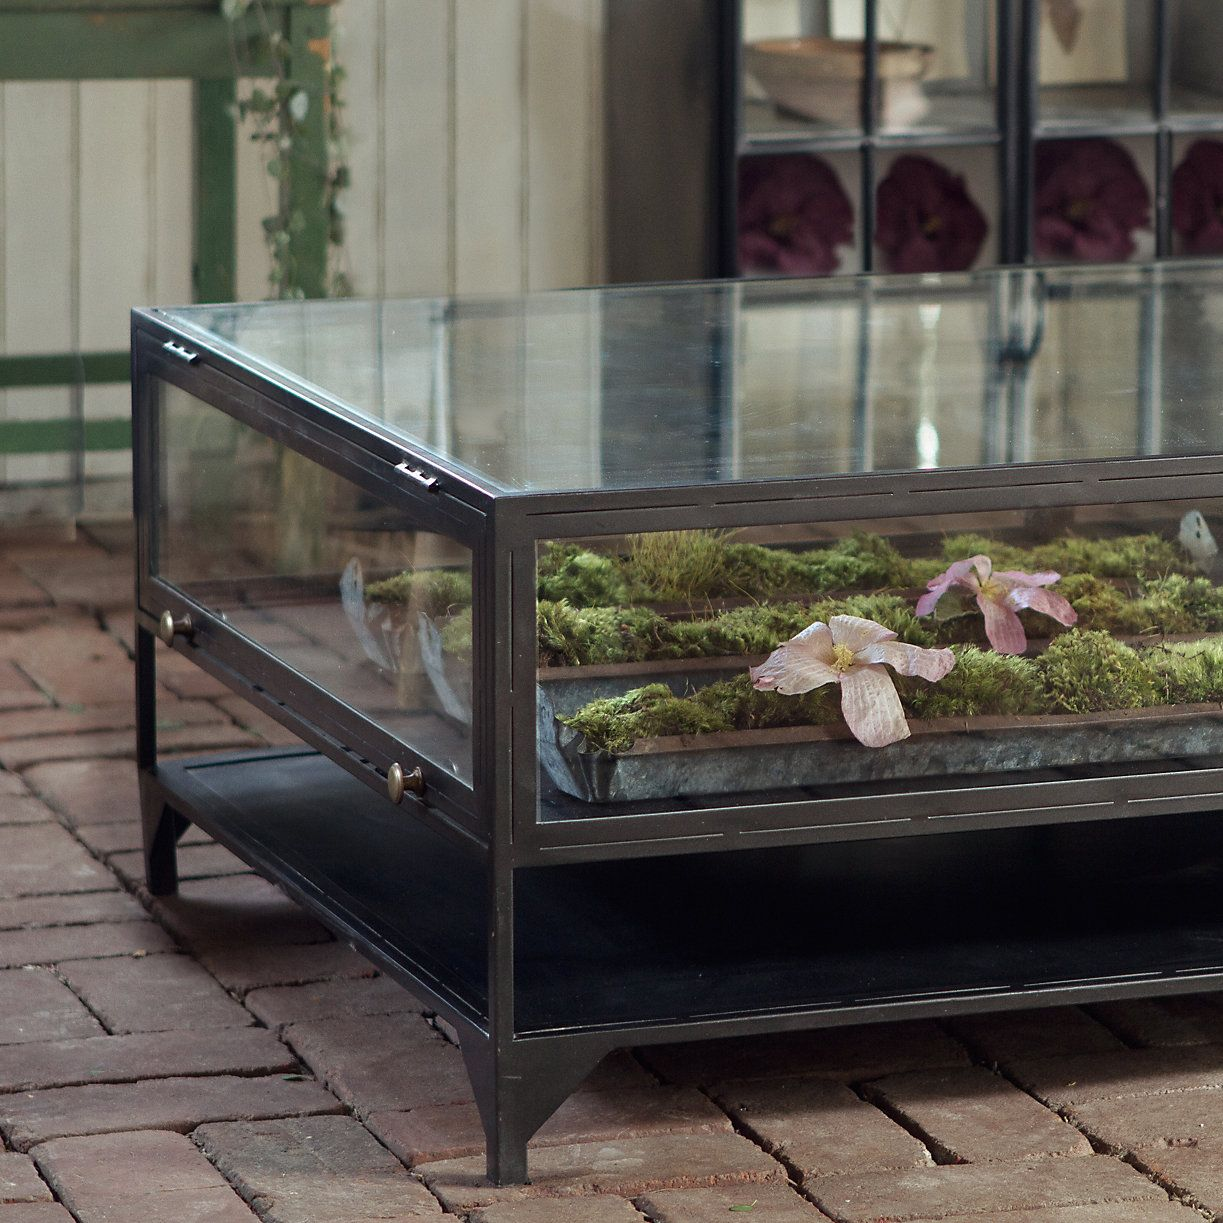 Curio Display Coffee Table Iron and Glass Tables Coffee and House